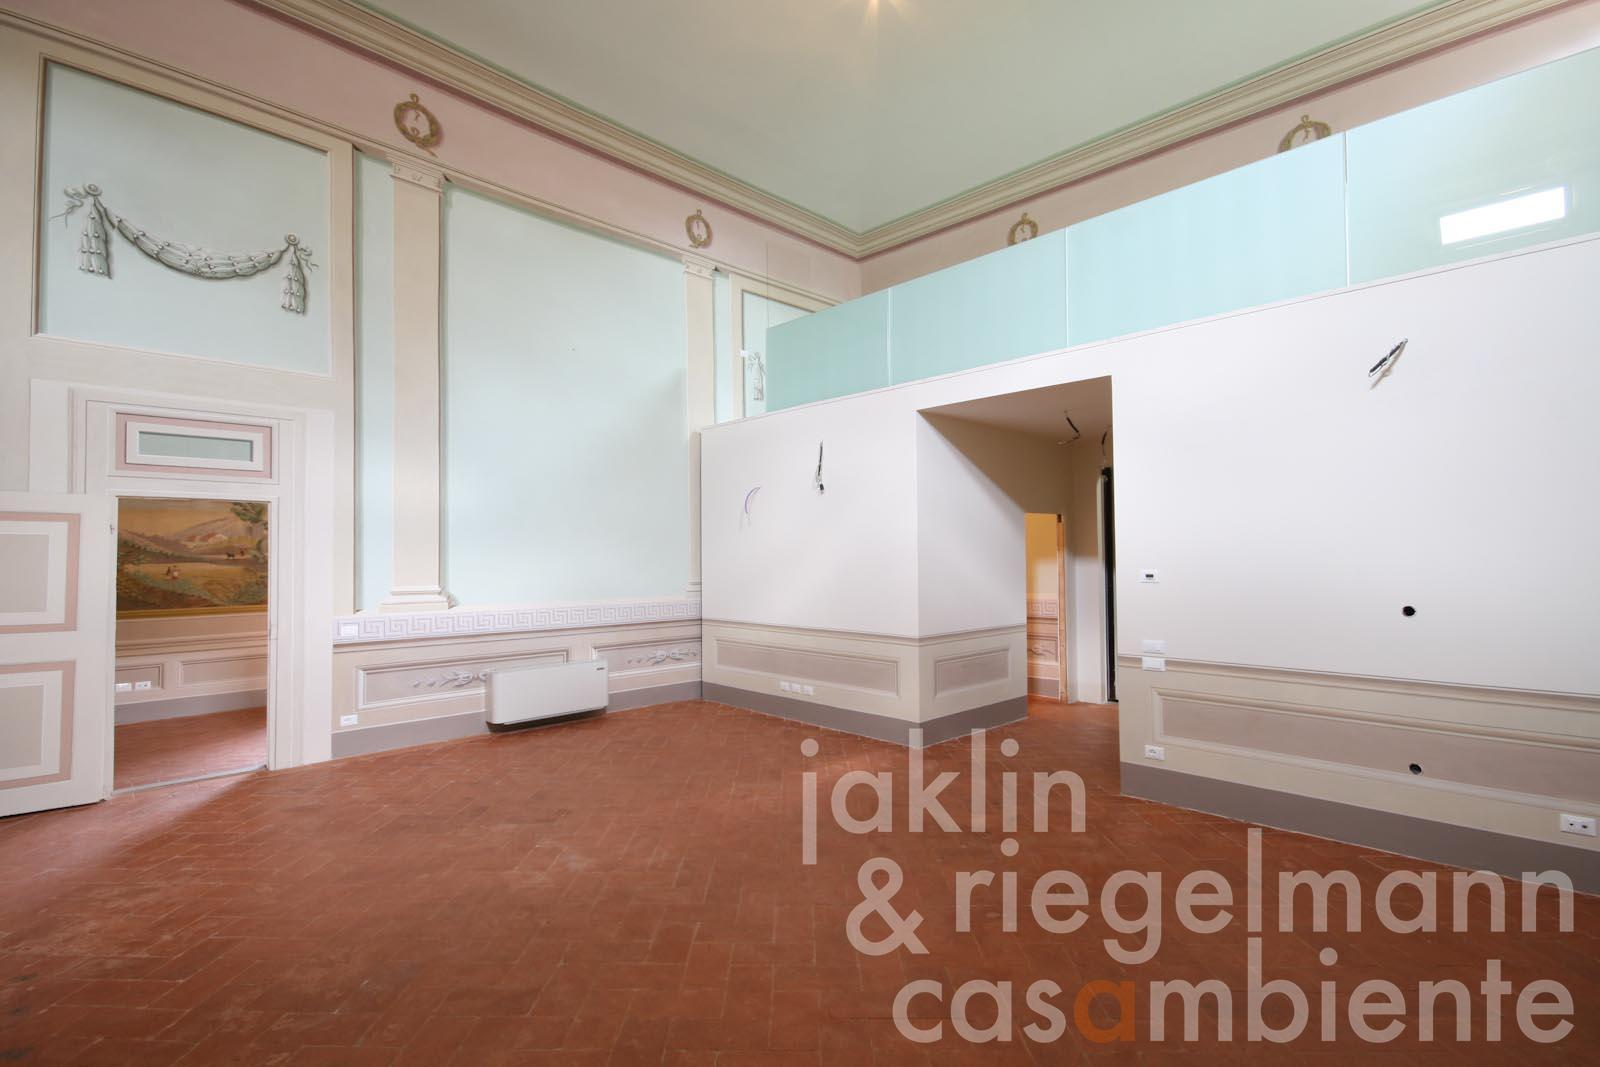 The former ballroom in the apartment in Florence for sale with frescos and gallery